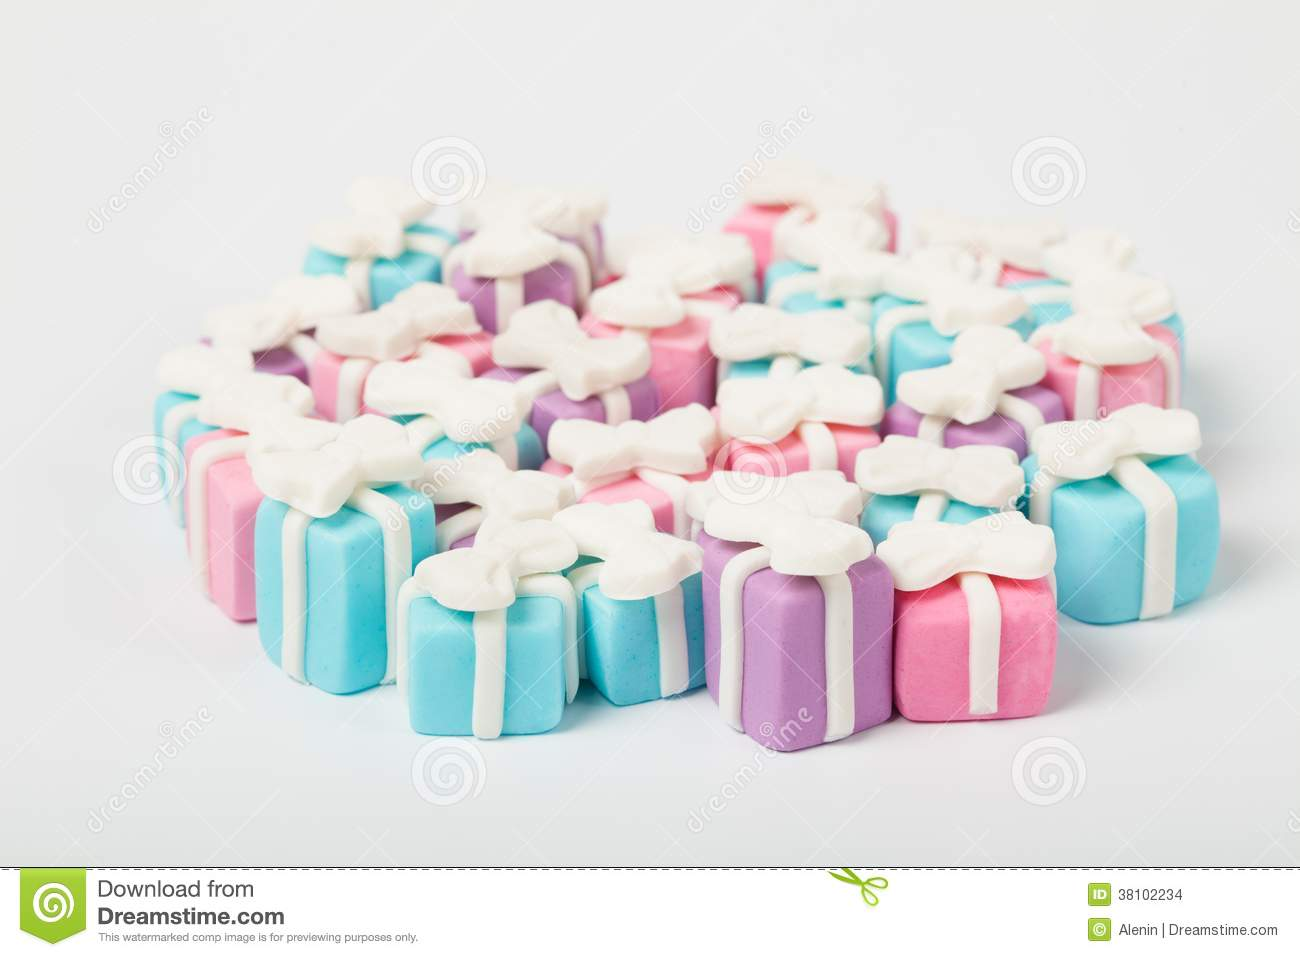 Many small gifts, sugar confectionery